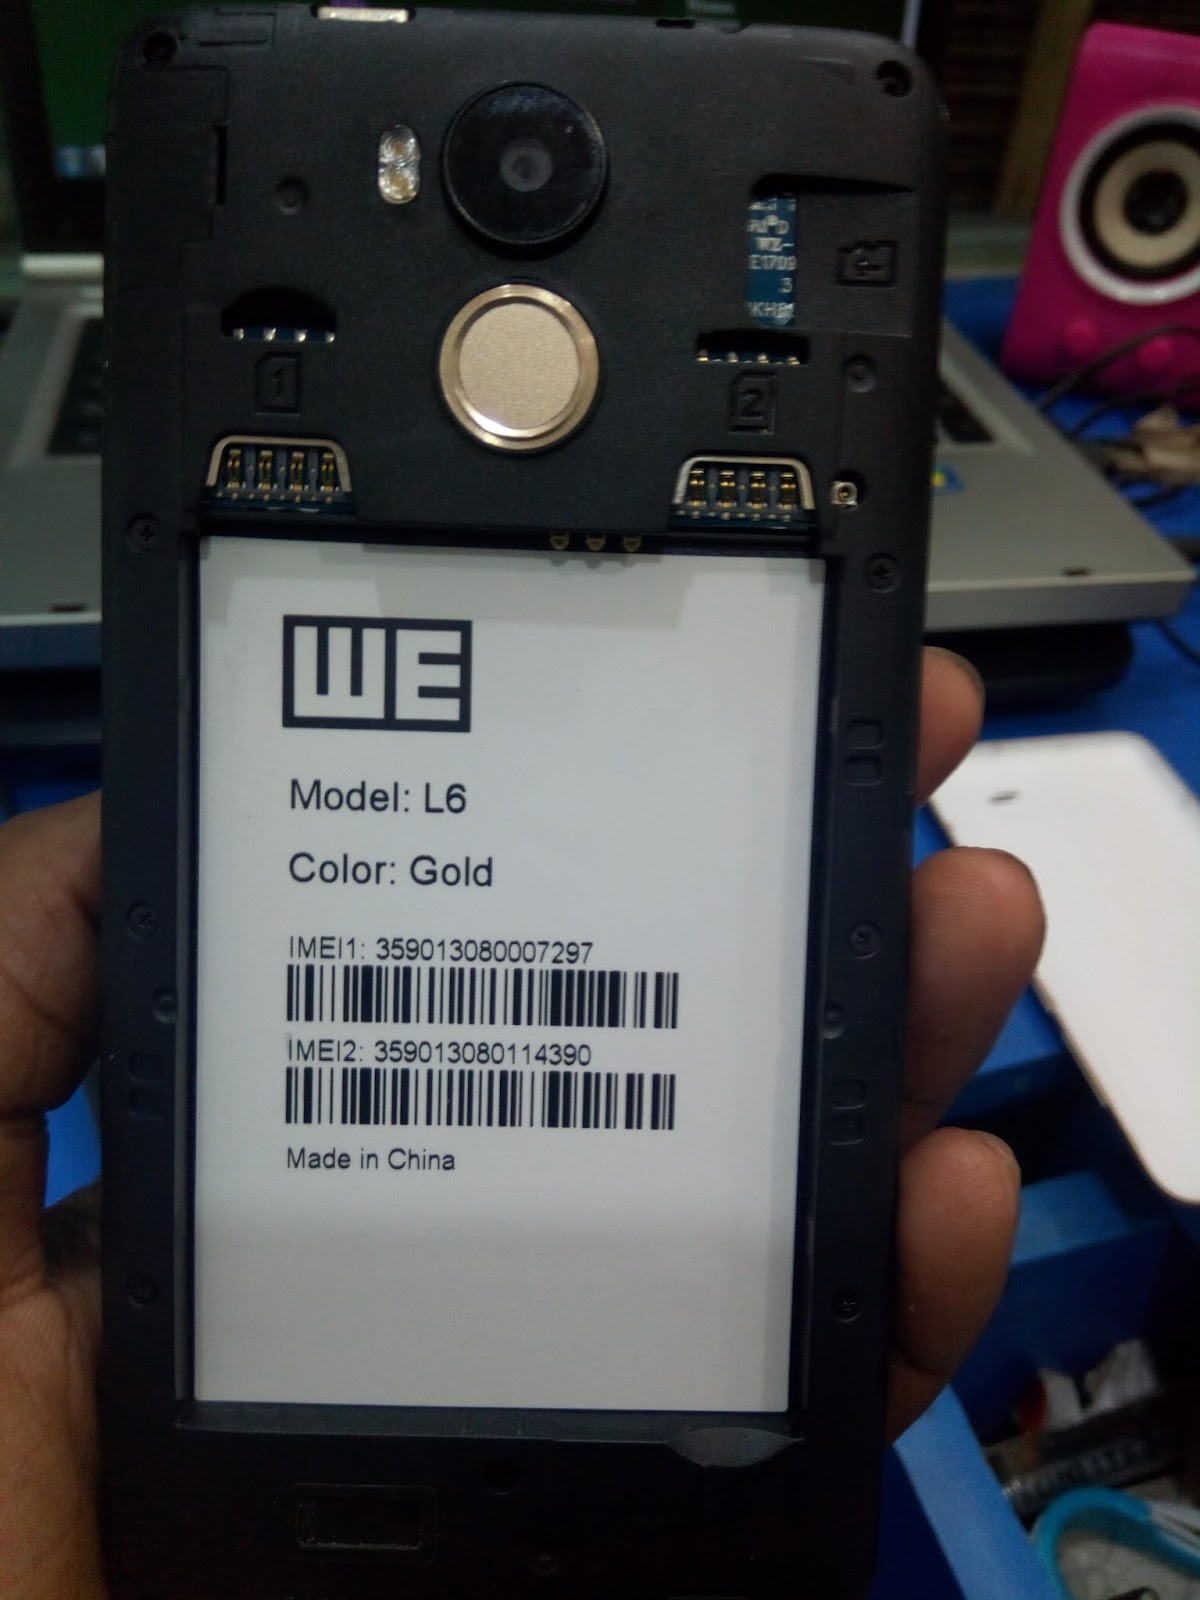 Flash file] zte blade l6 firmware download [stock rom].